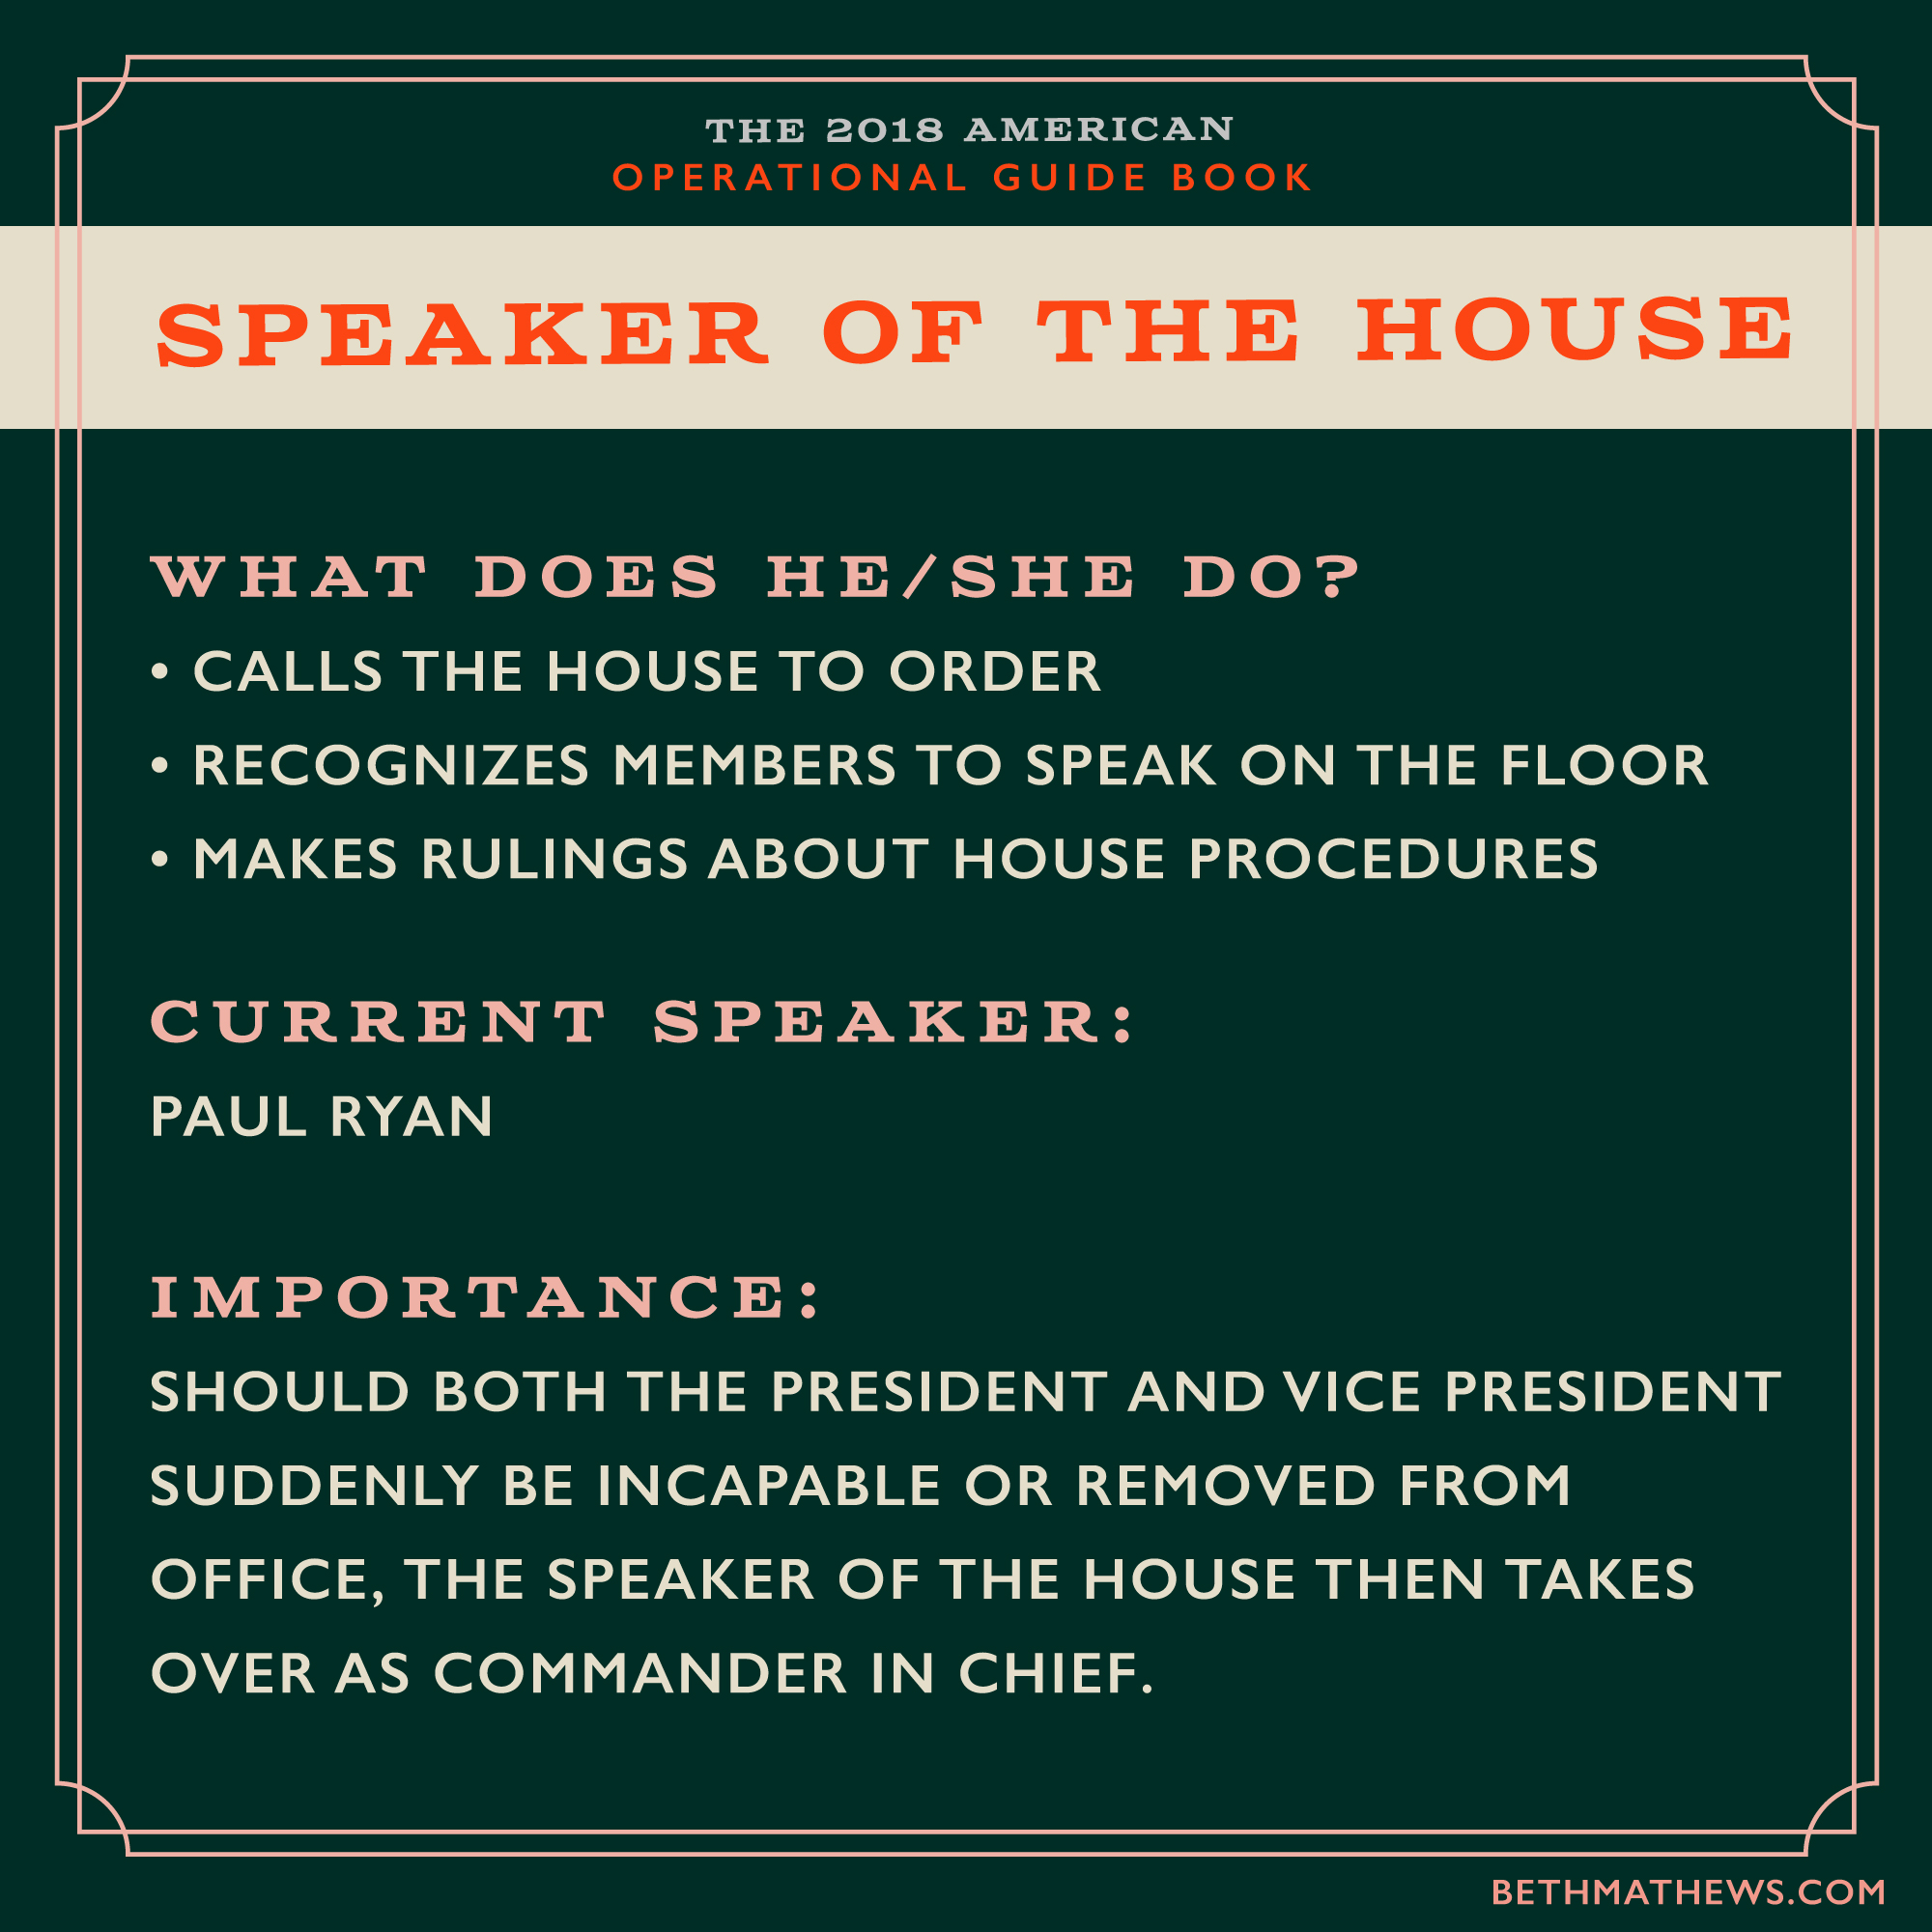 speakerofhouse_facebook.jpg